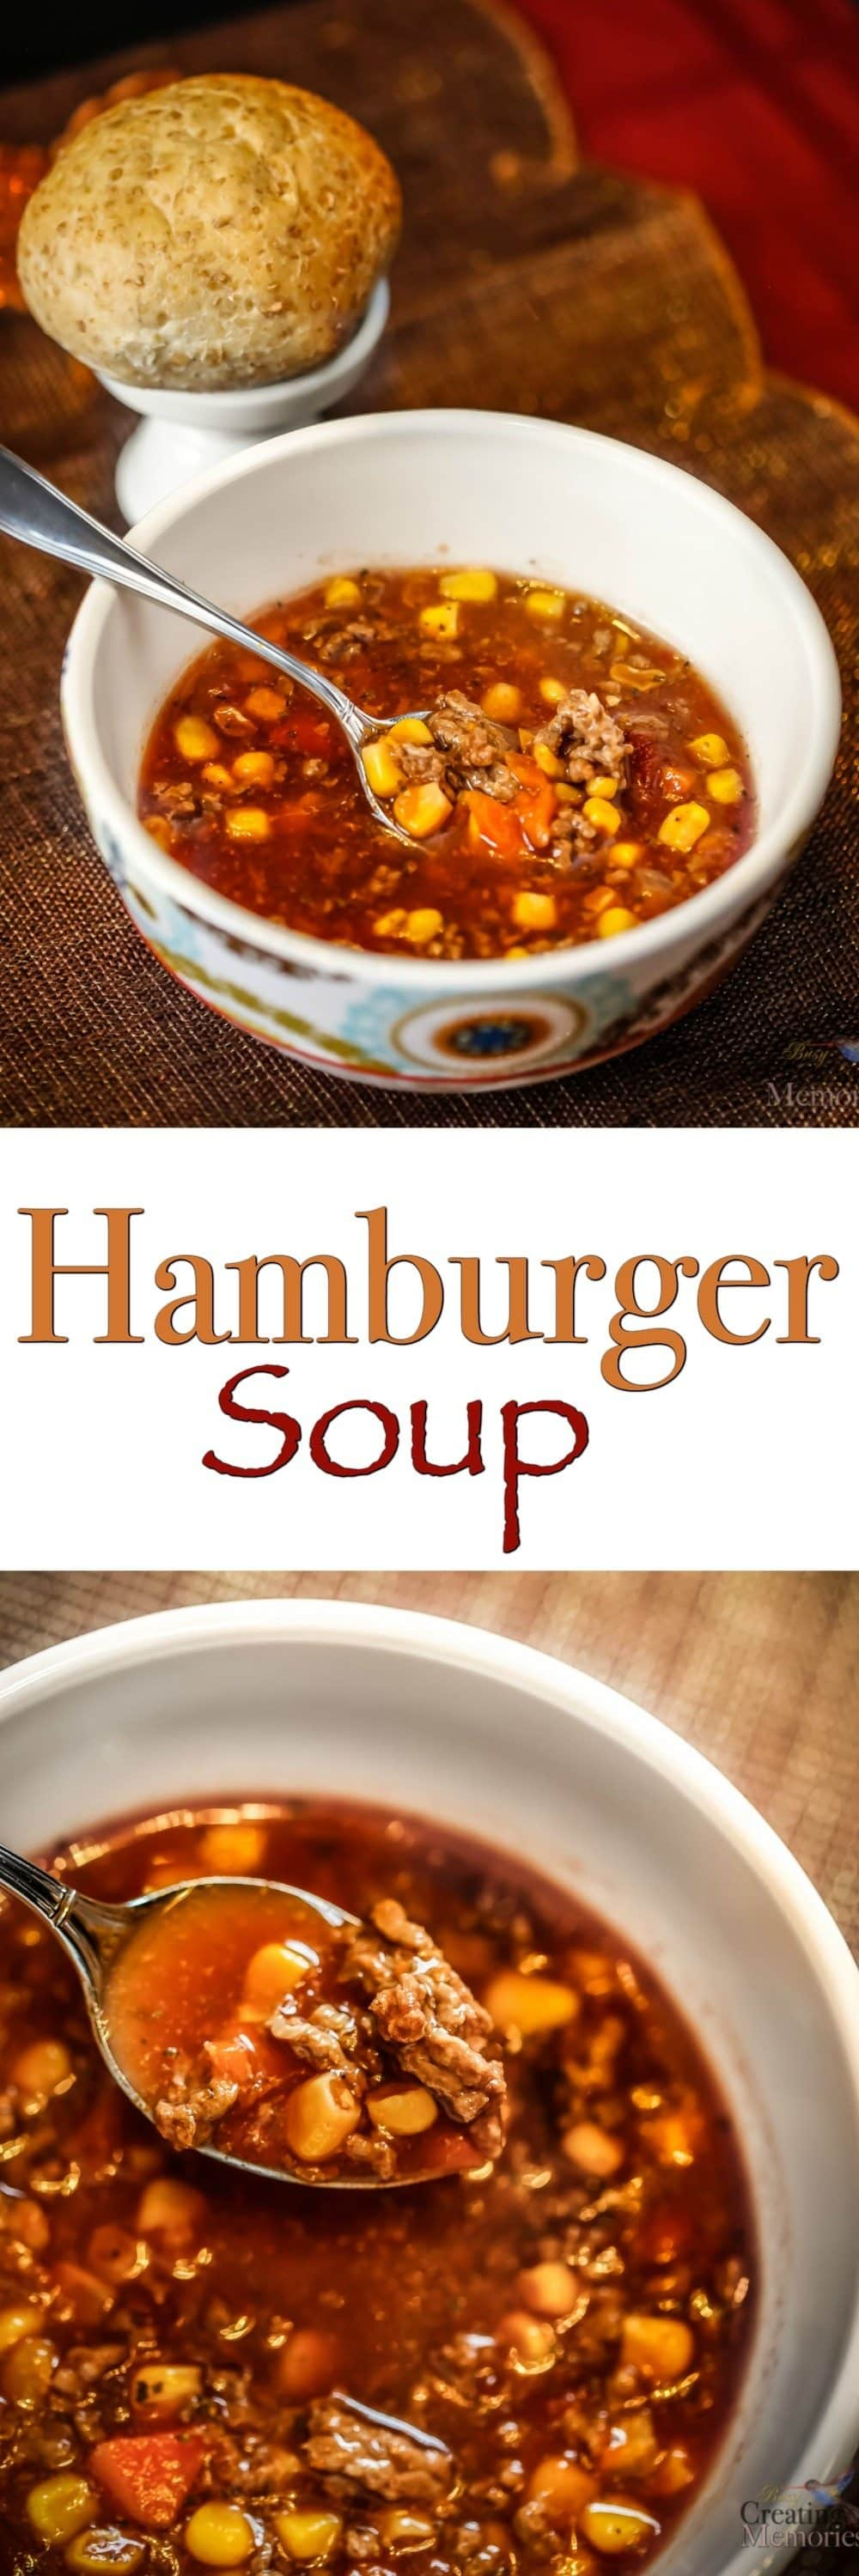 A heartwarming combination of hamburger and vegetables in a tomato base makes this delicious hamburger soup that is easy to throw together on a cold day.